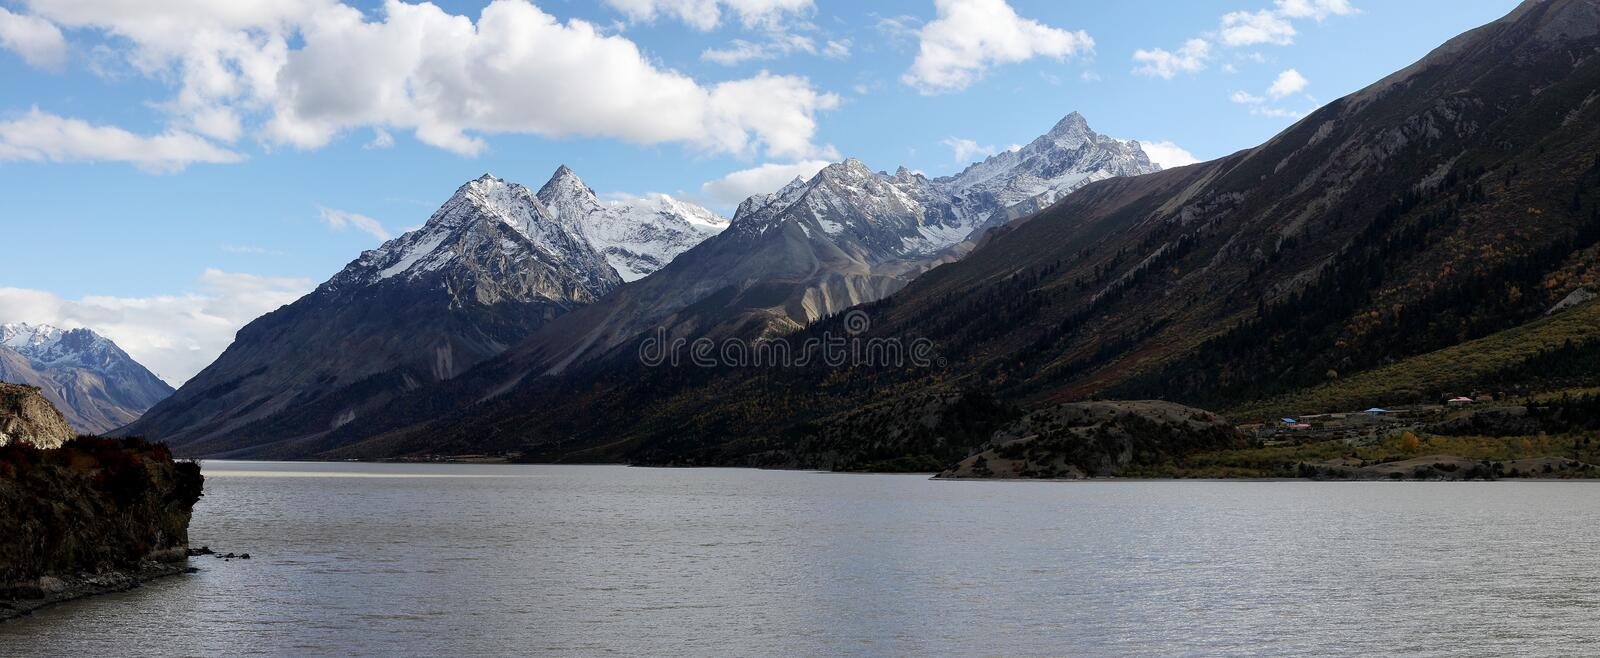 Mountain and lake in tibet stock photo